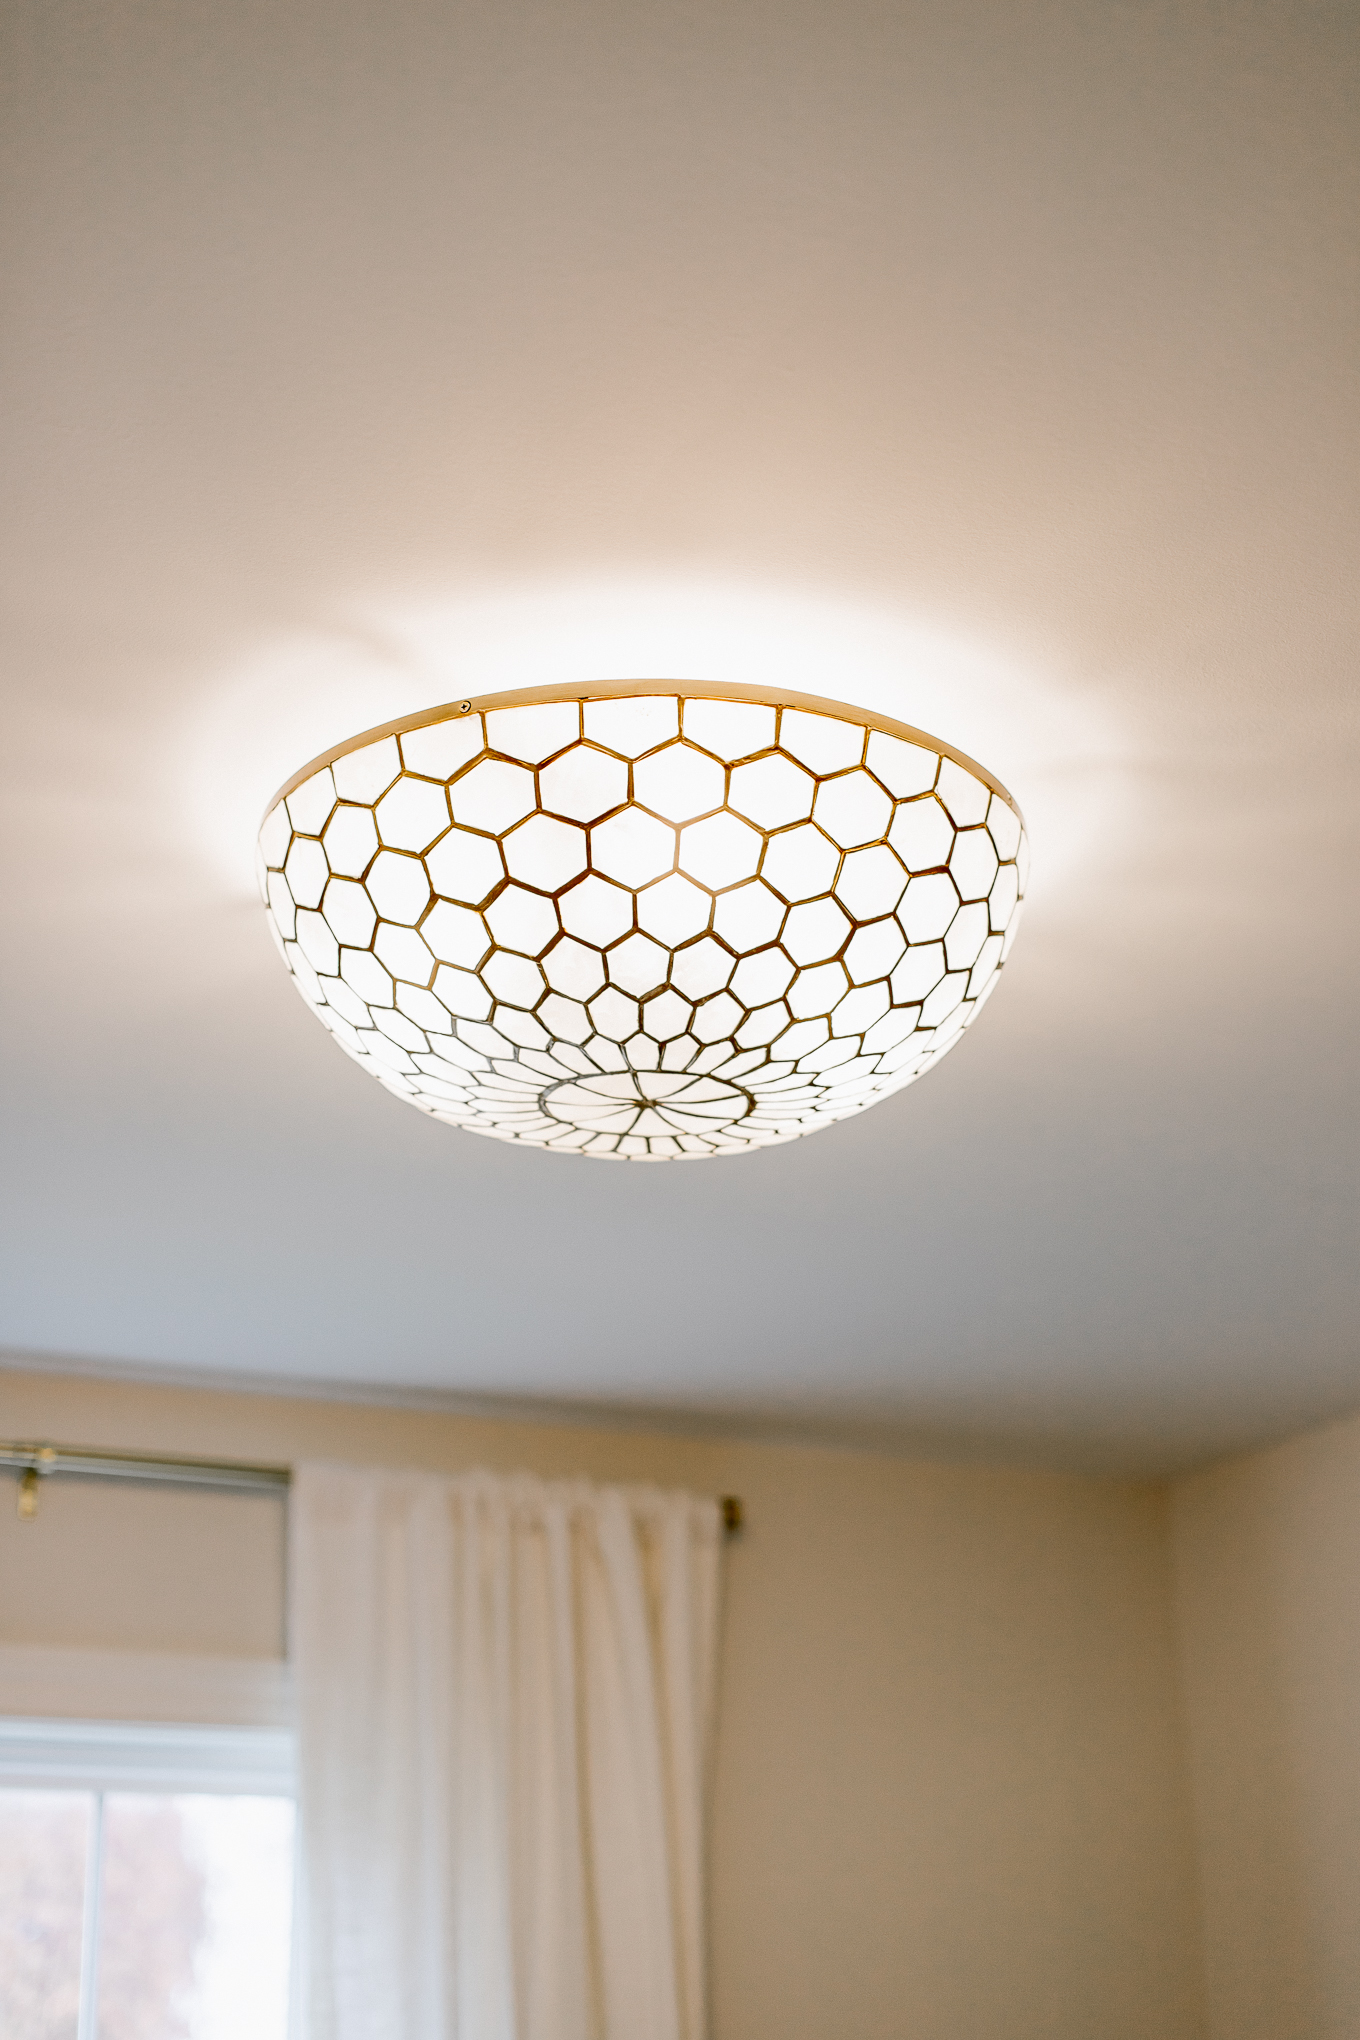 BEAUTIFUL Flush Mount Light, Prettiest Flush Mount for Bedroom or Bathroom | Louella Reese